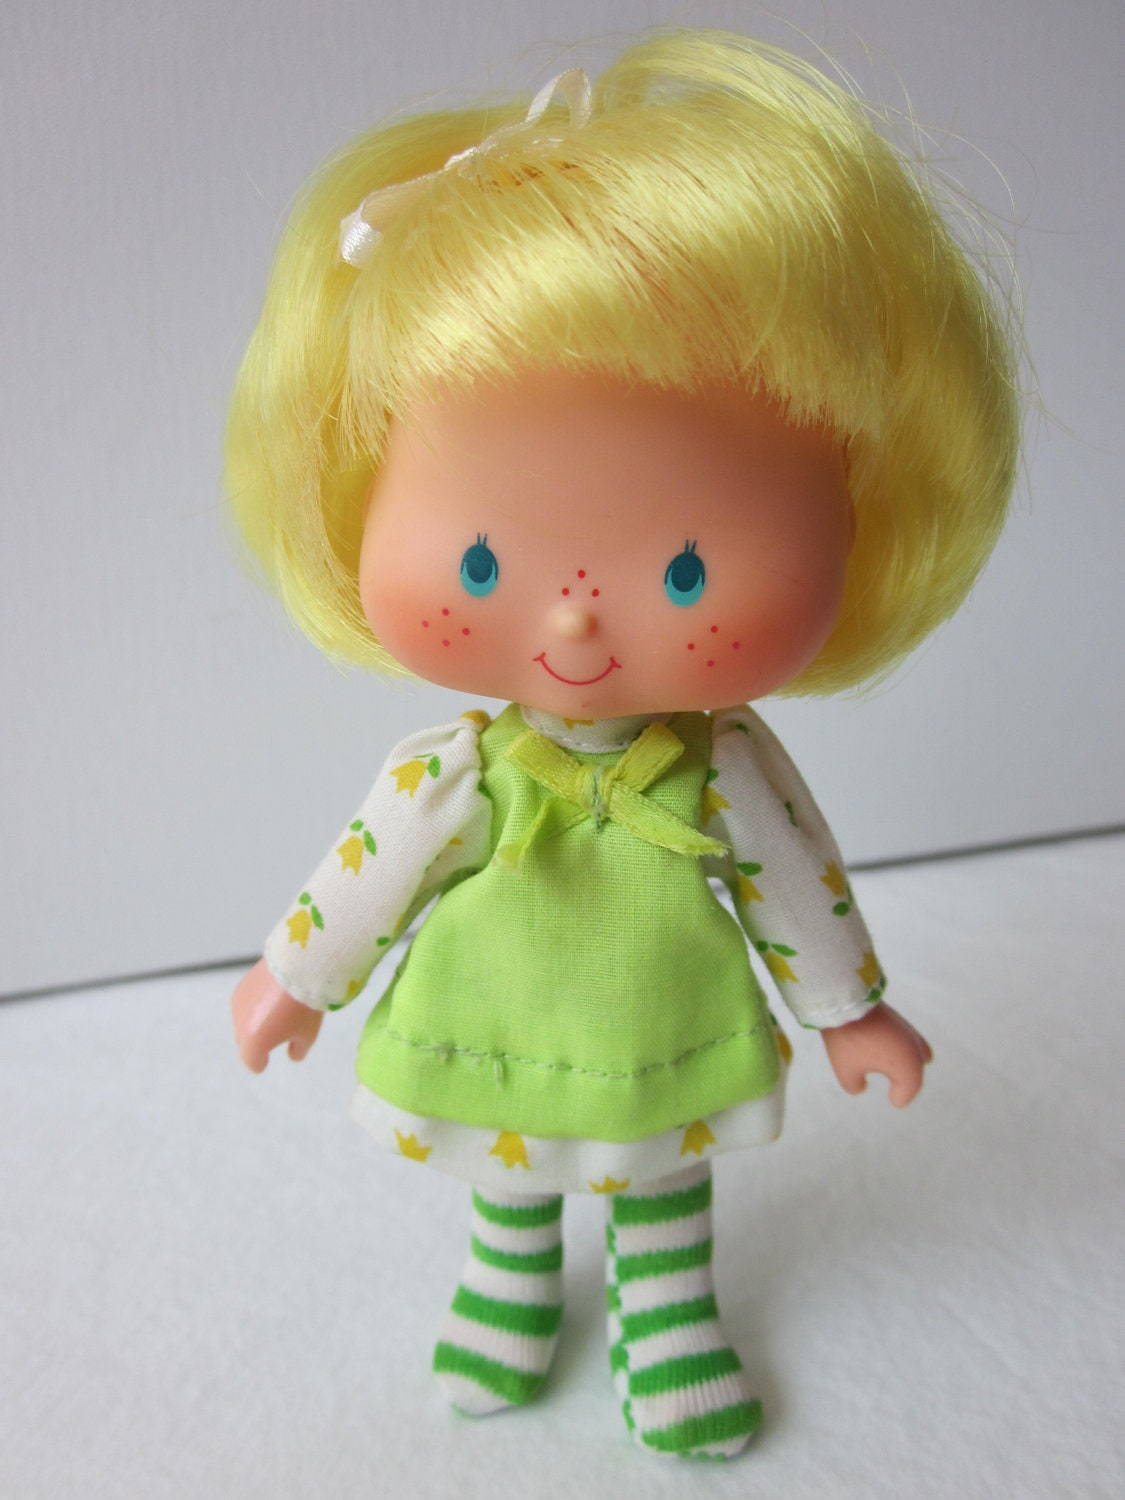 Vintage Strawberry Shortcake Mint Tulip Doll